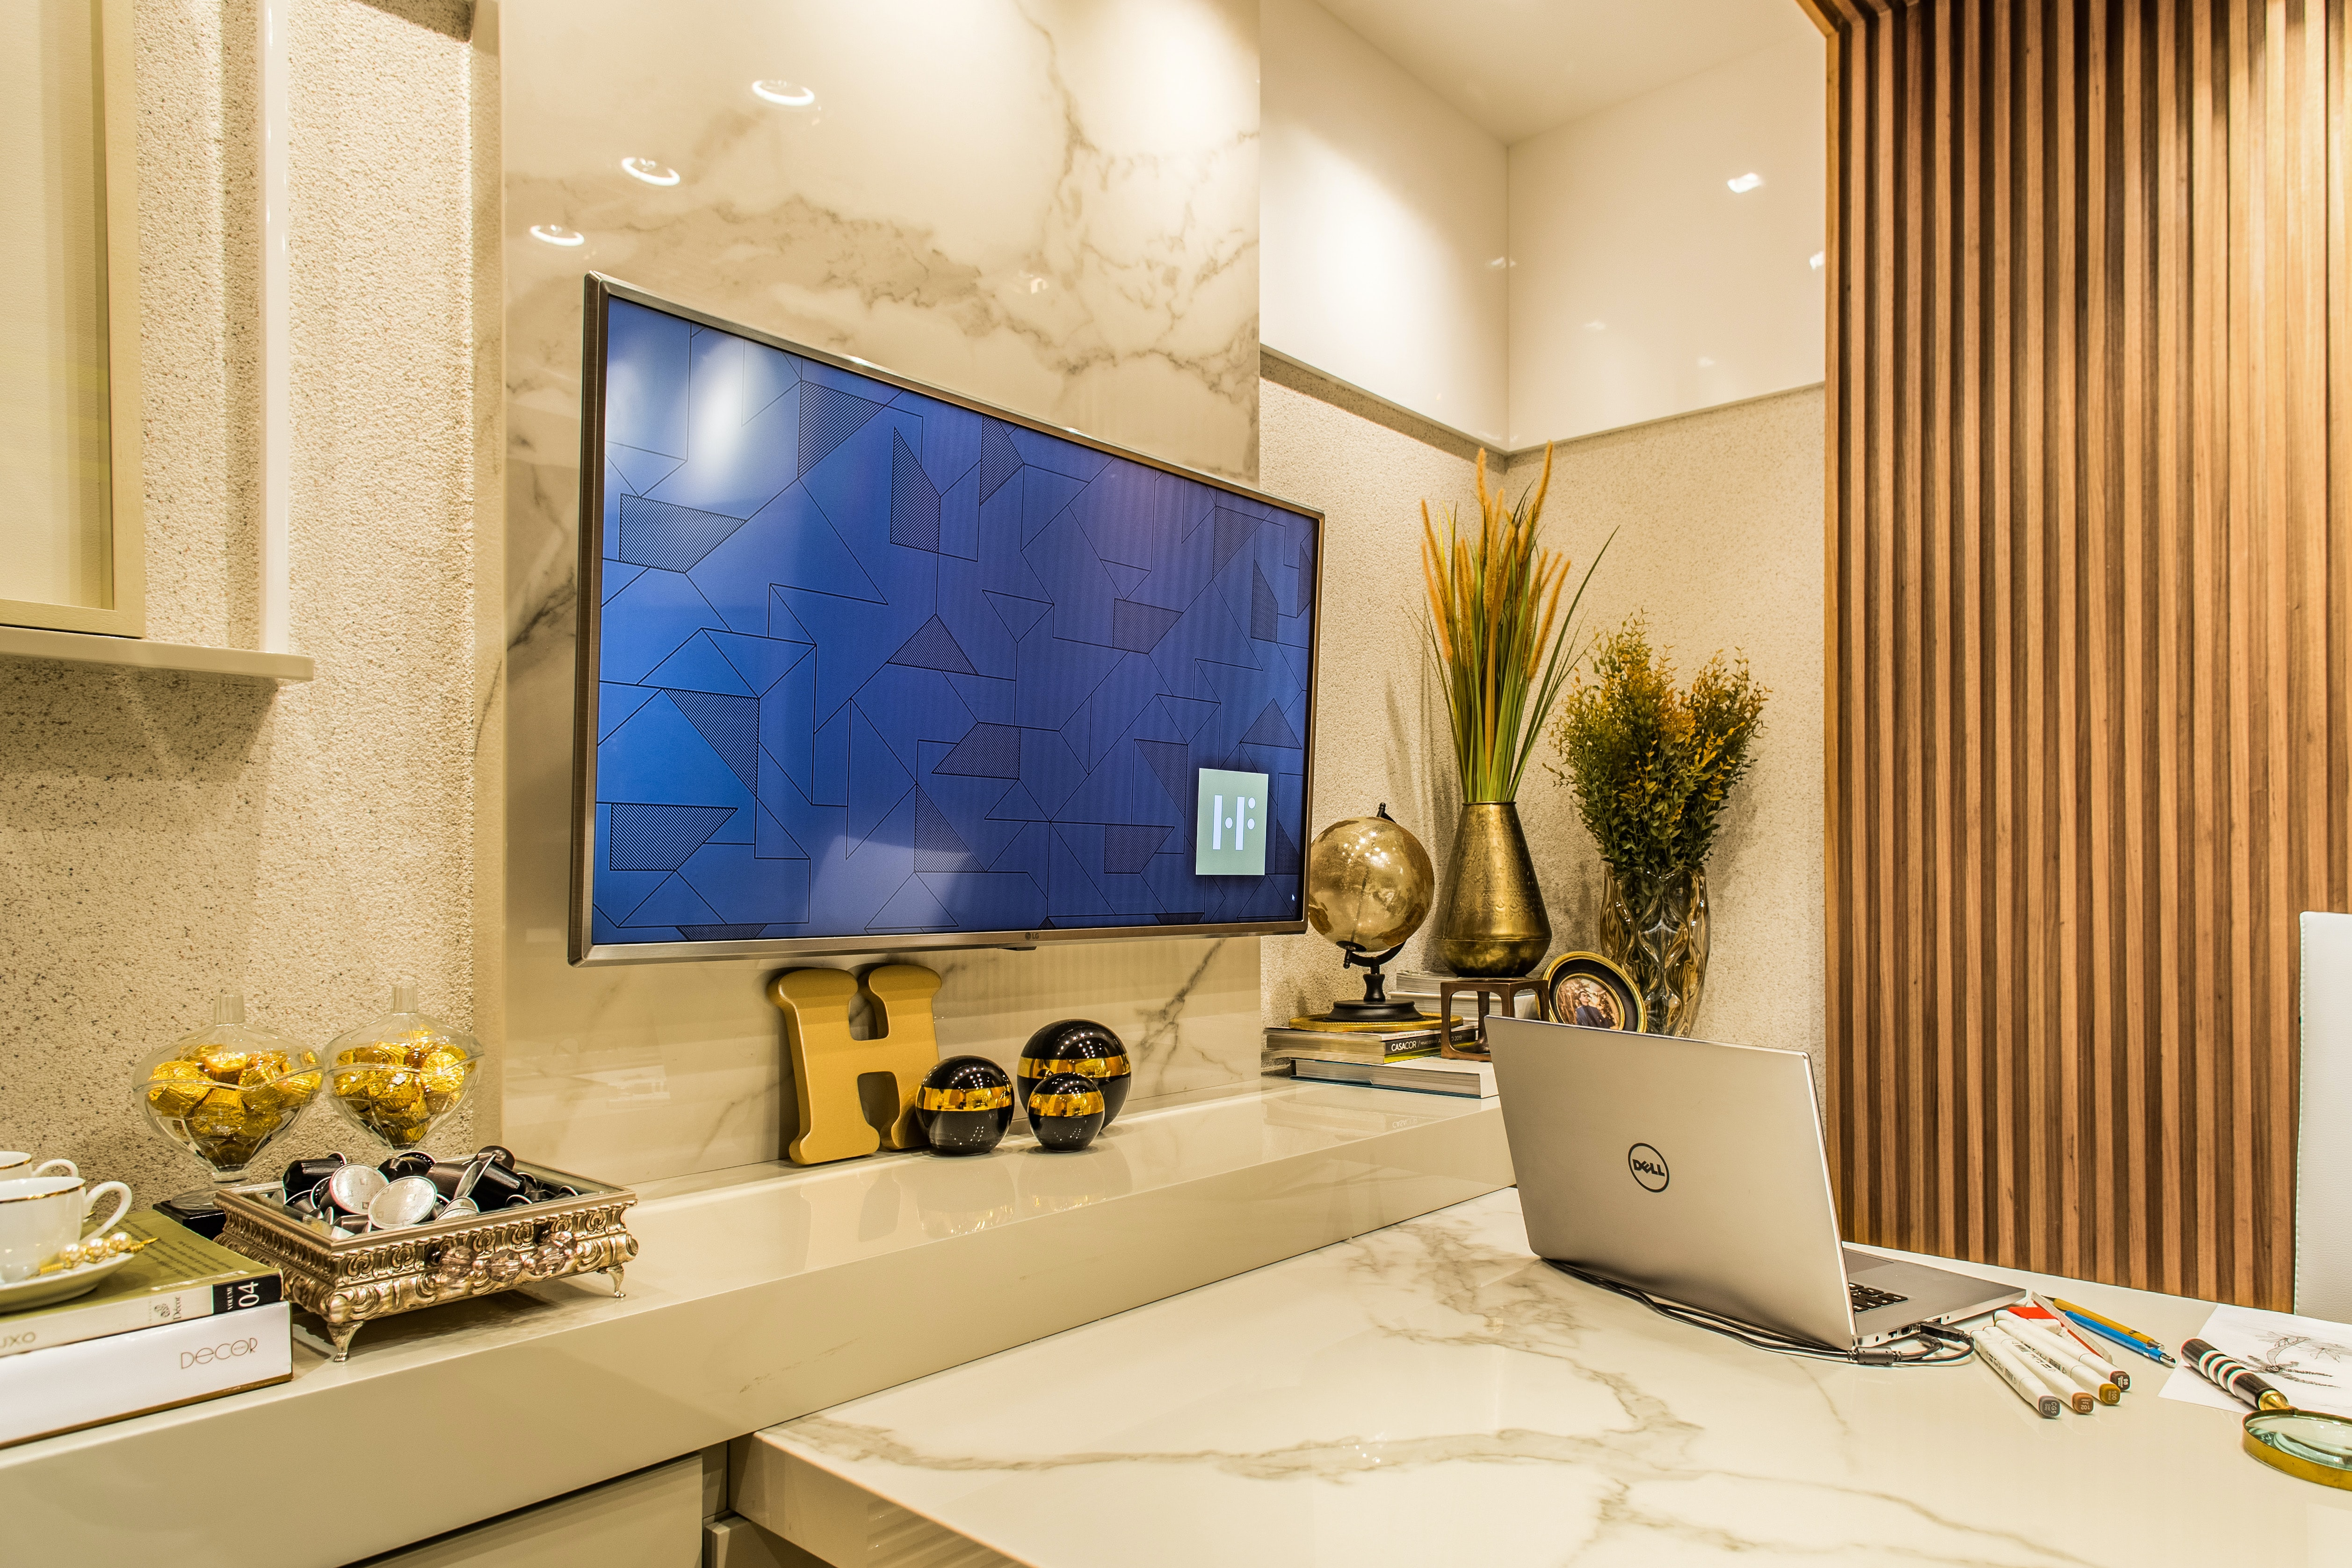 Office Lobby with TV and marble appearance